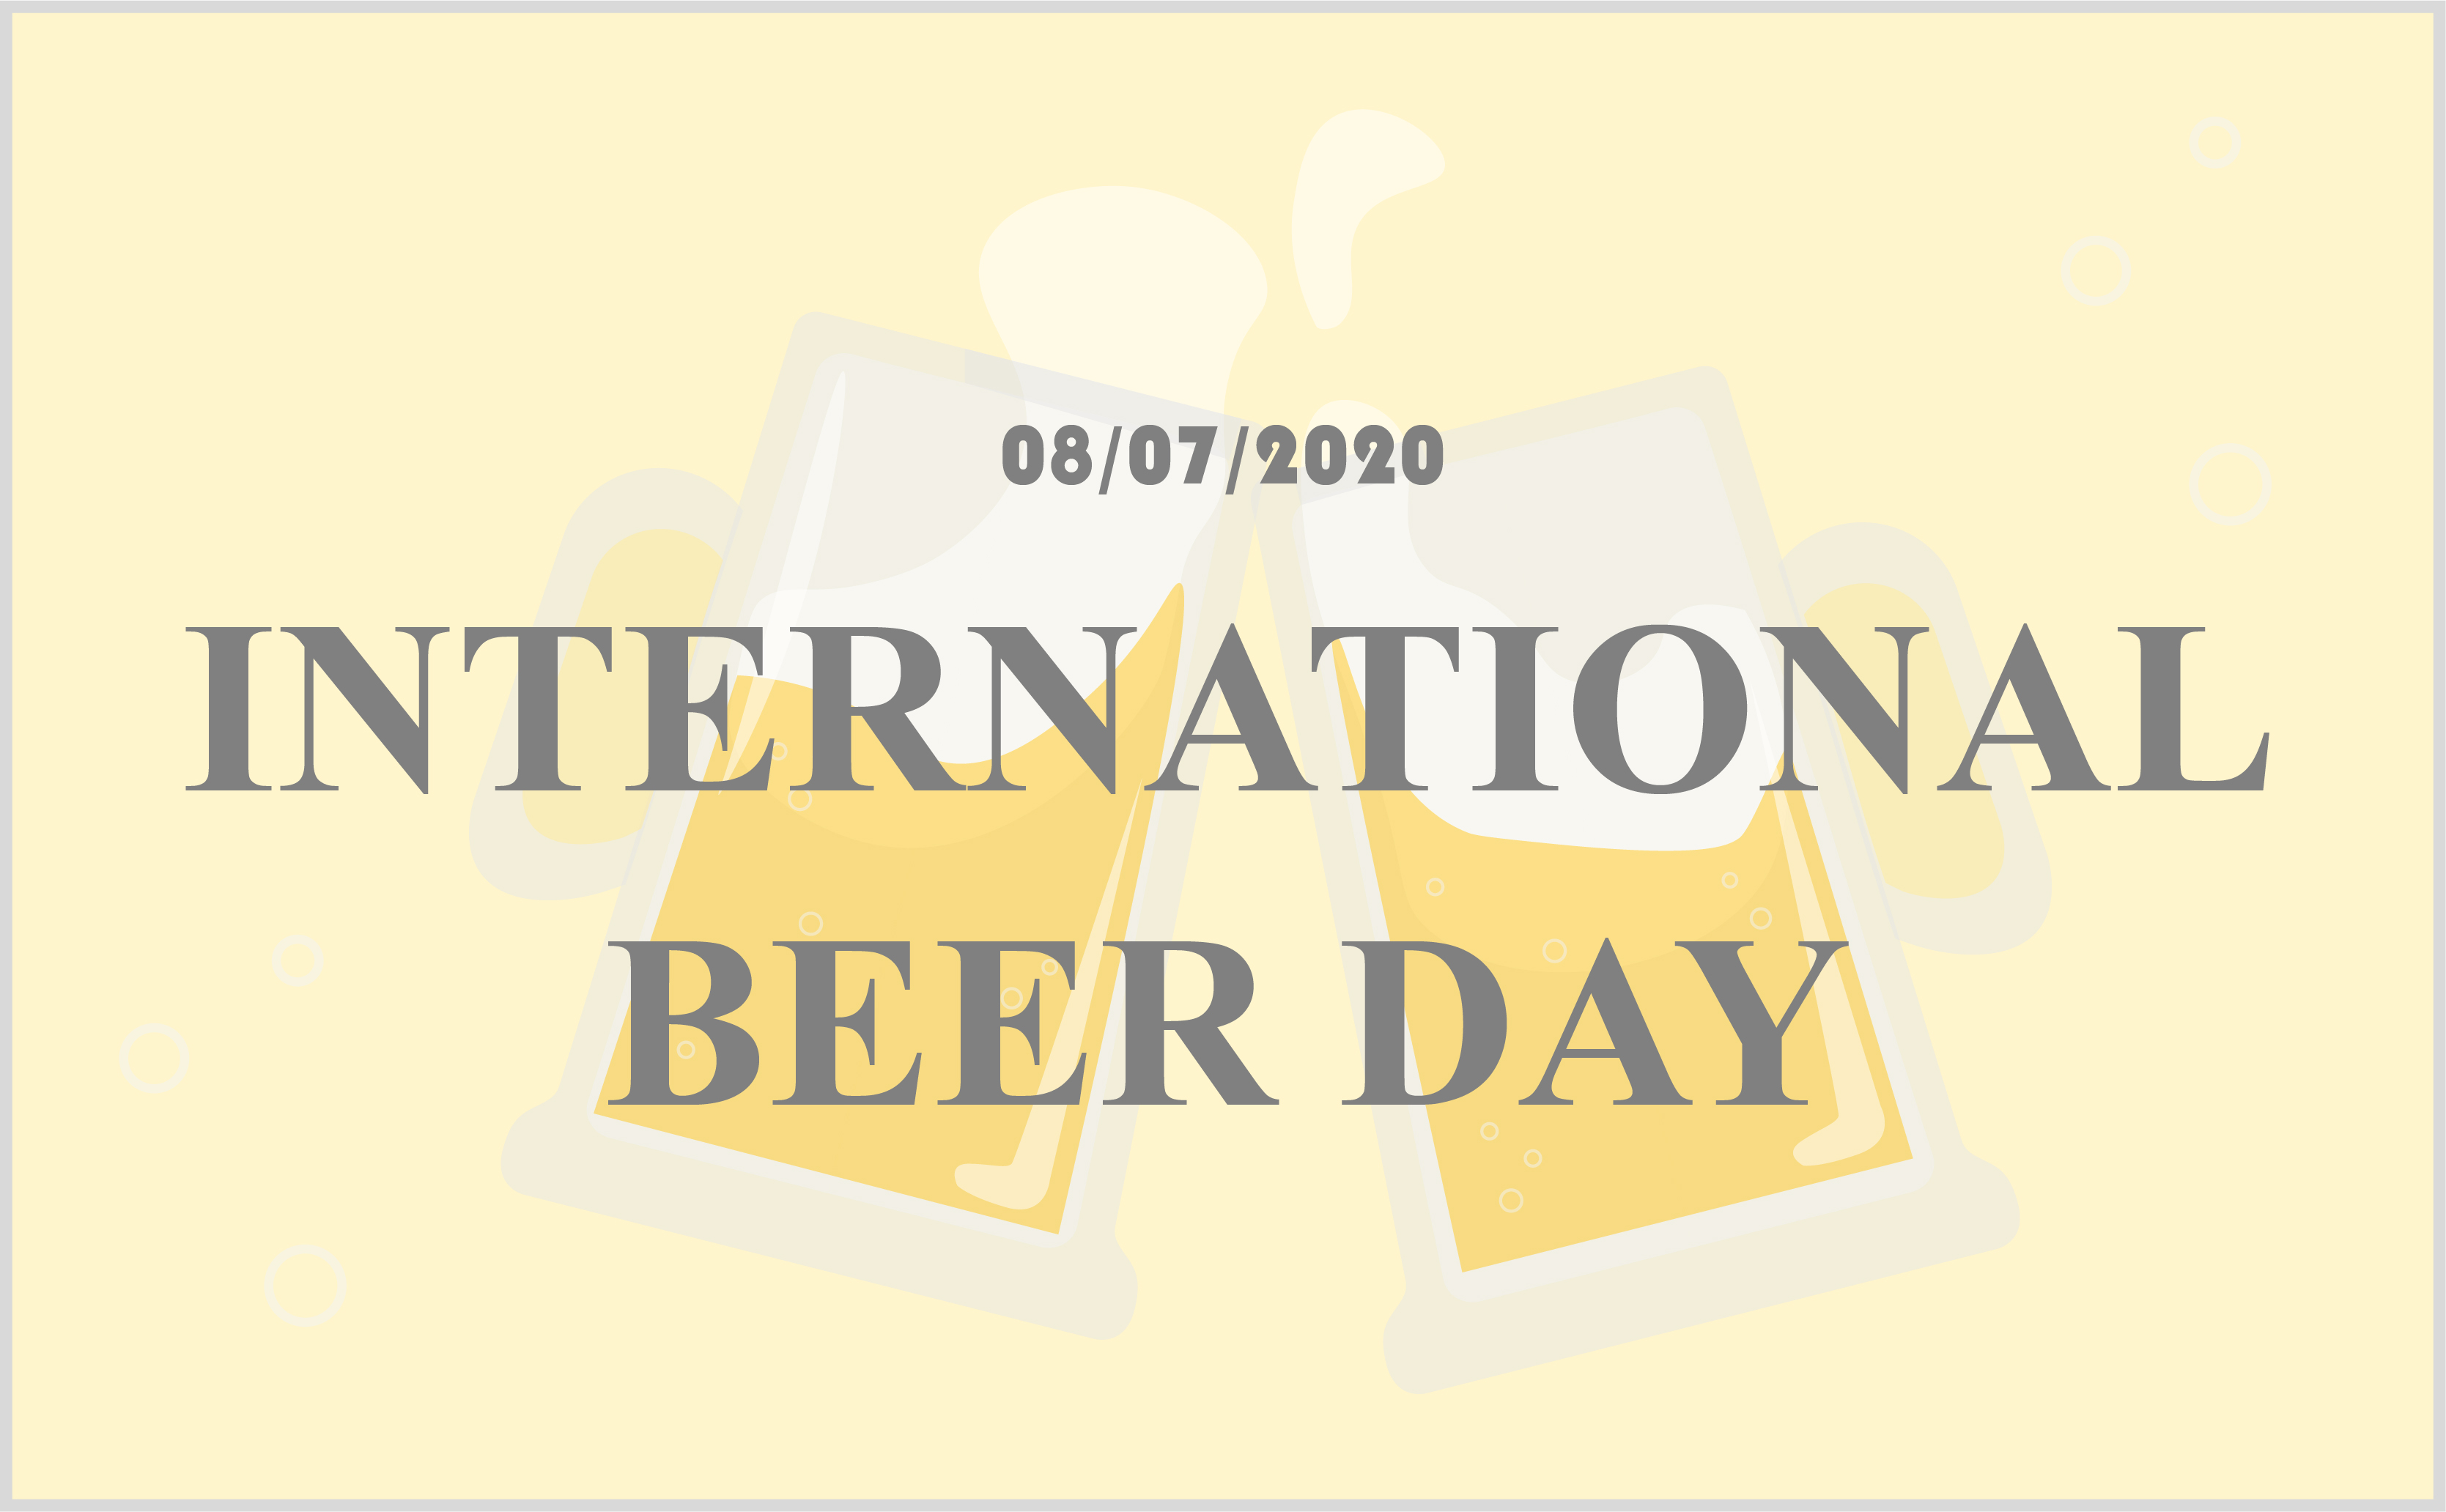 Celebrate International Beer Day on August 7th, 2020